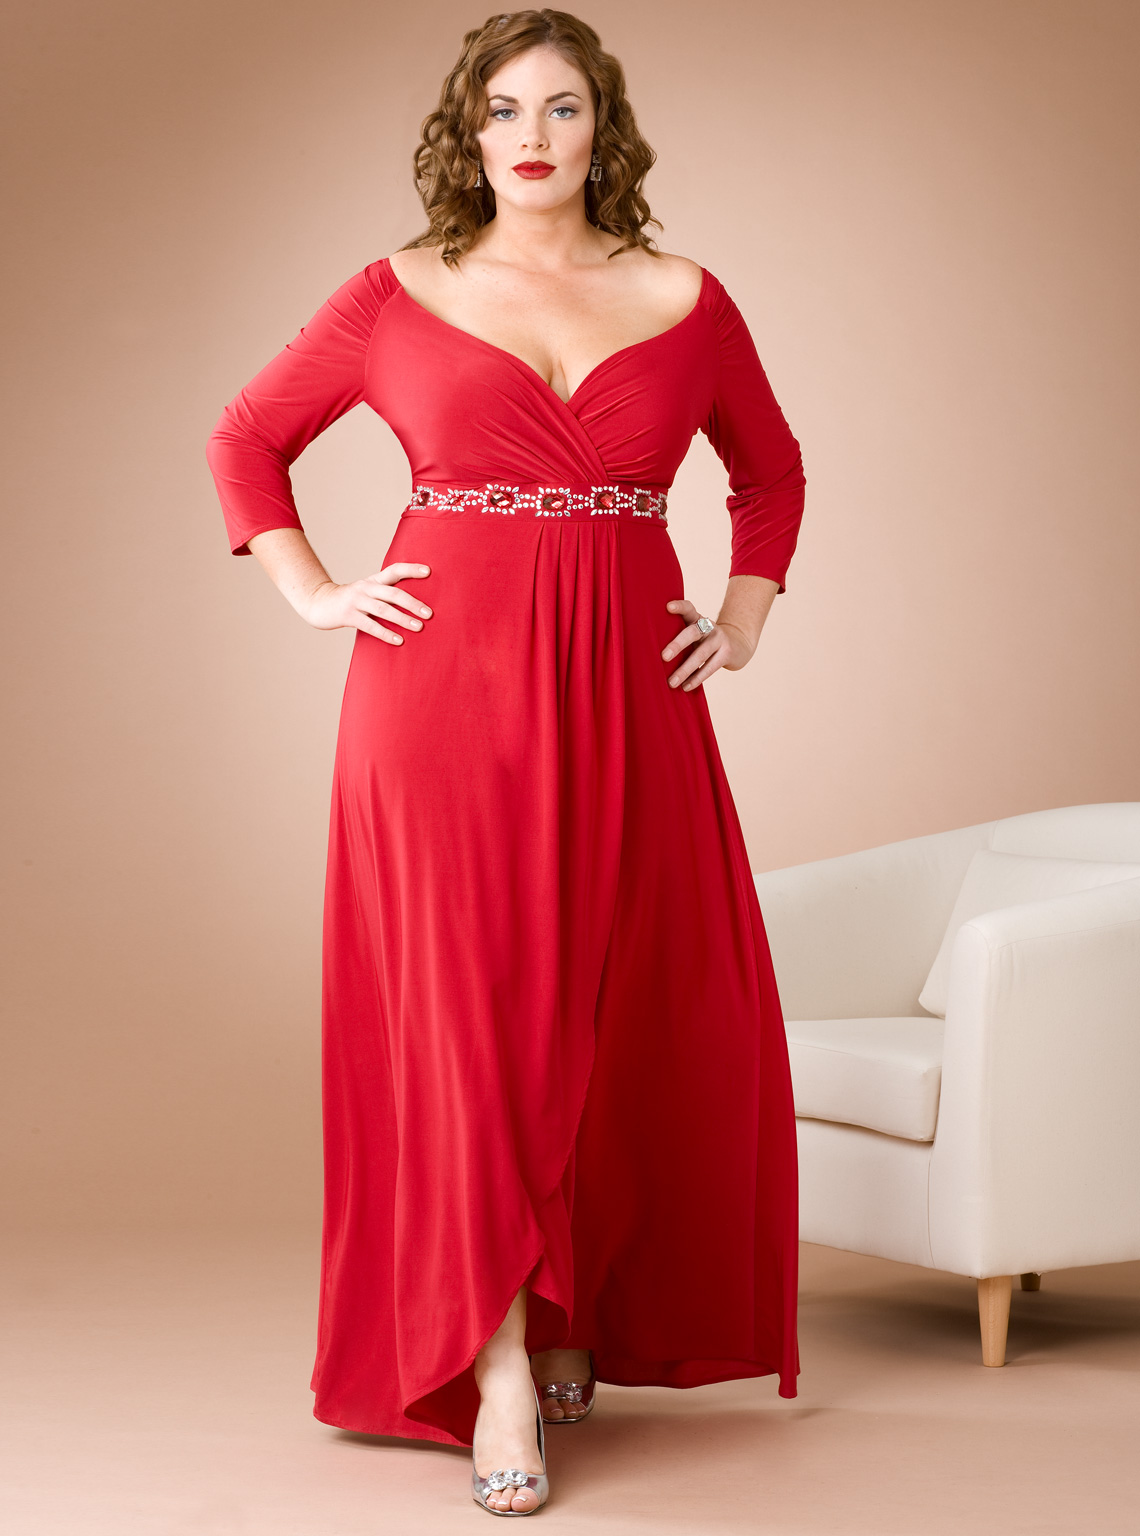 Women's Plus-Size Dresses from europegamexma.gq Whether you're on the lookout for a sleeveless linen shirt dress for the office or a crisp ivory eyelet dress for a special occasion, you can find a wide selection of women's plus-size dresses at europegamexma.gq in many styles, brands, colors, patterns, and sizes.